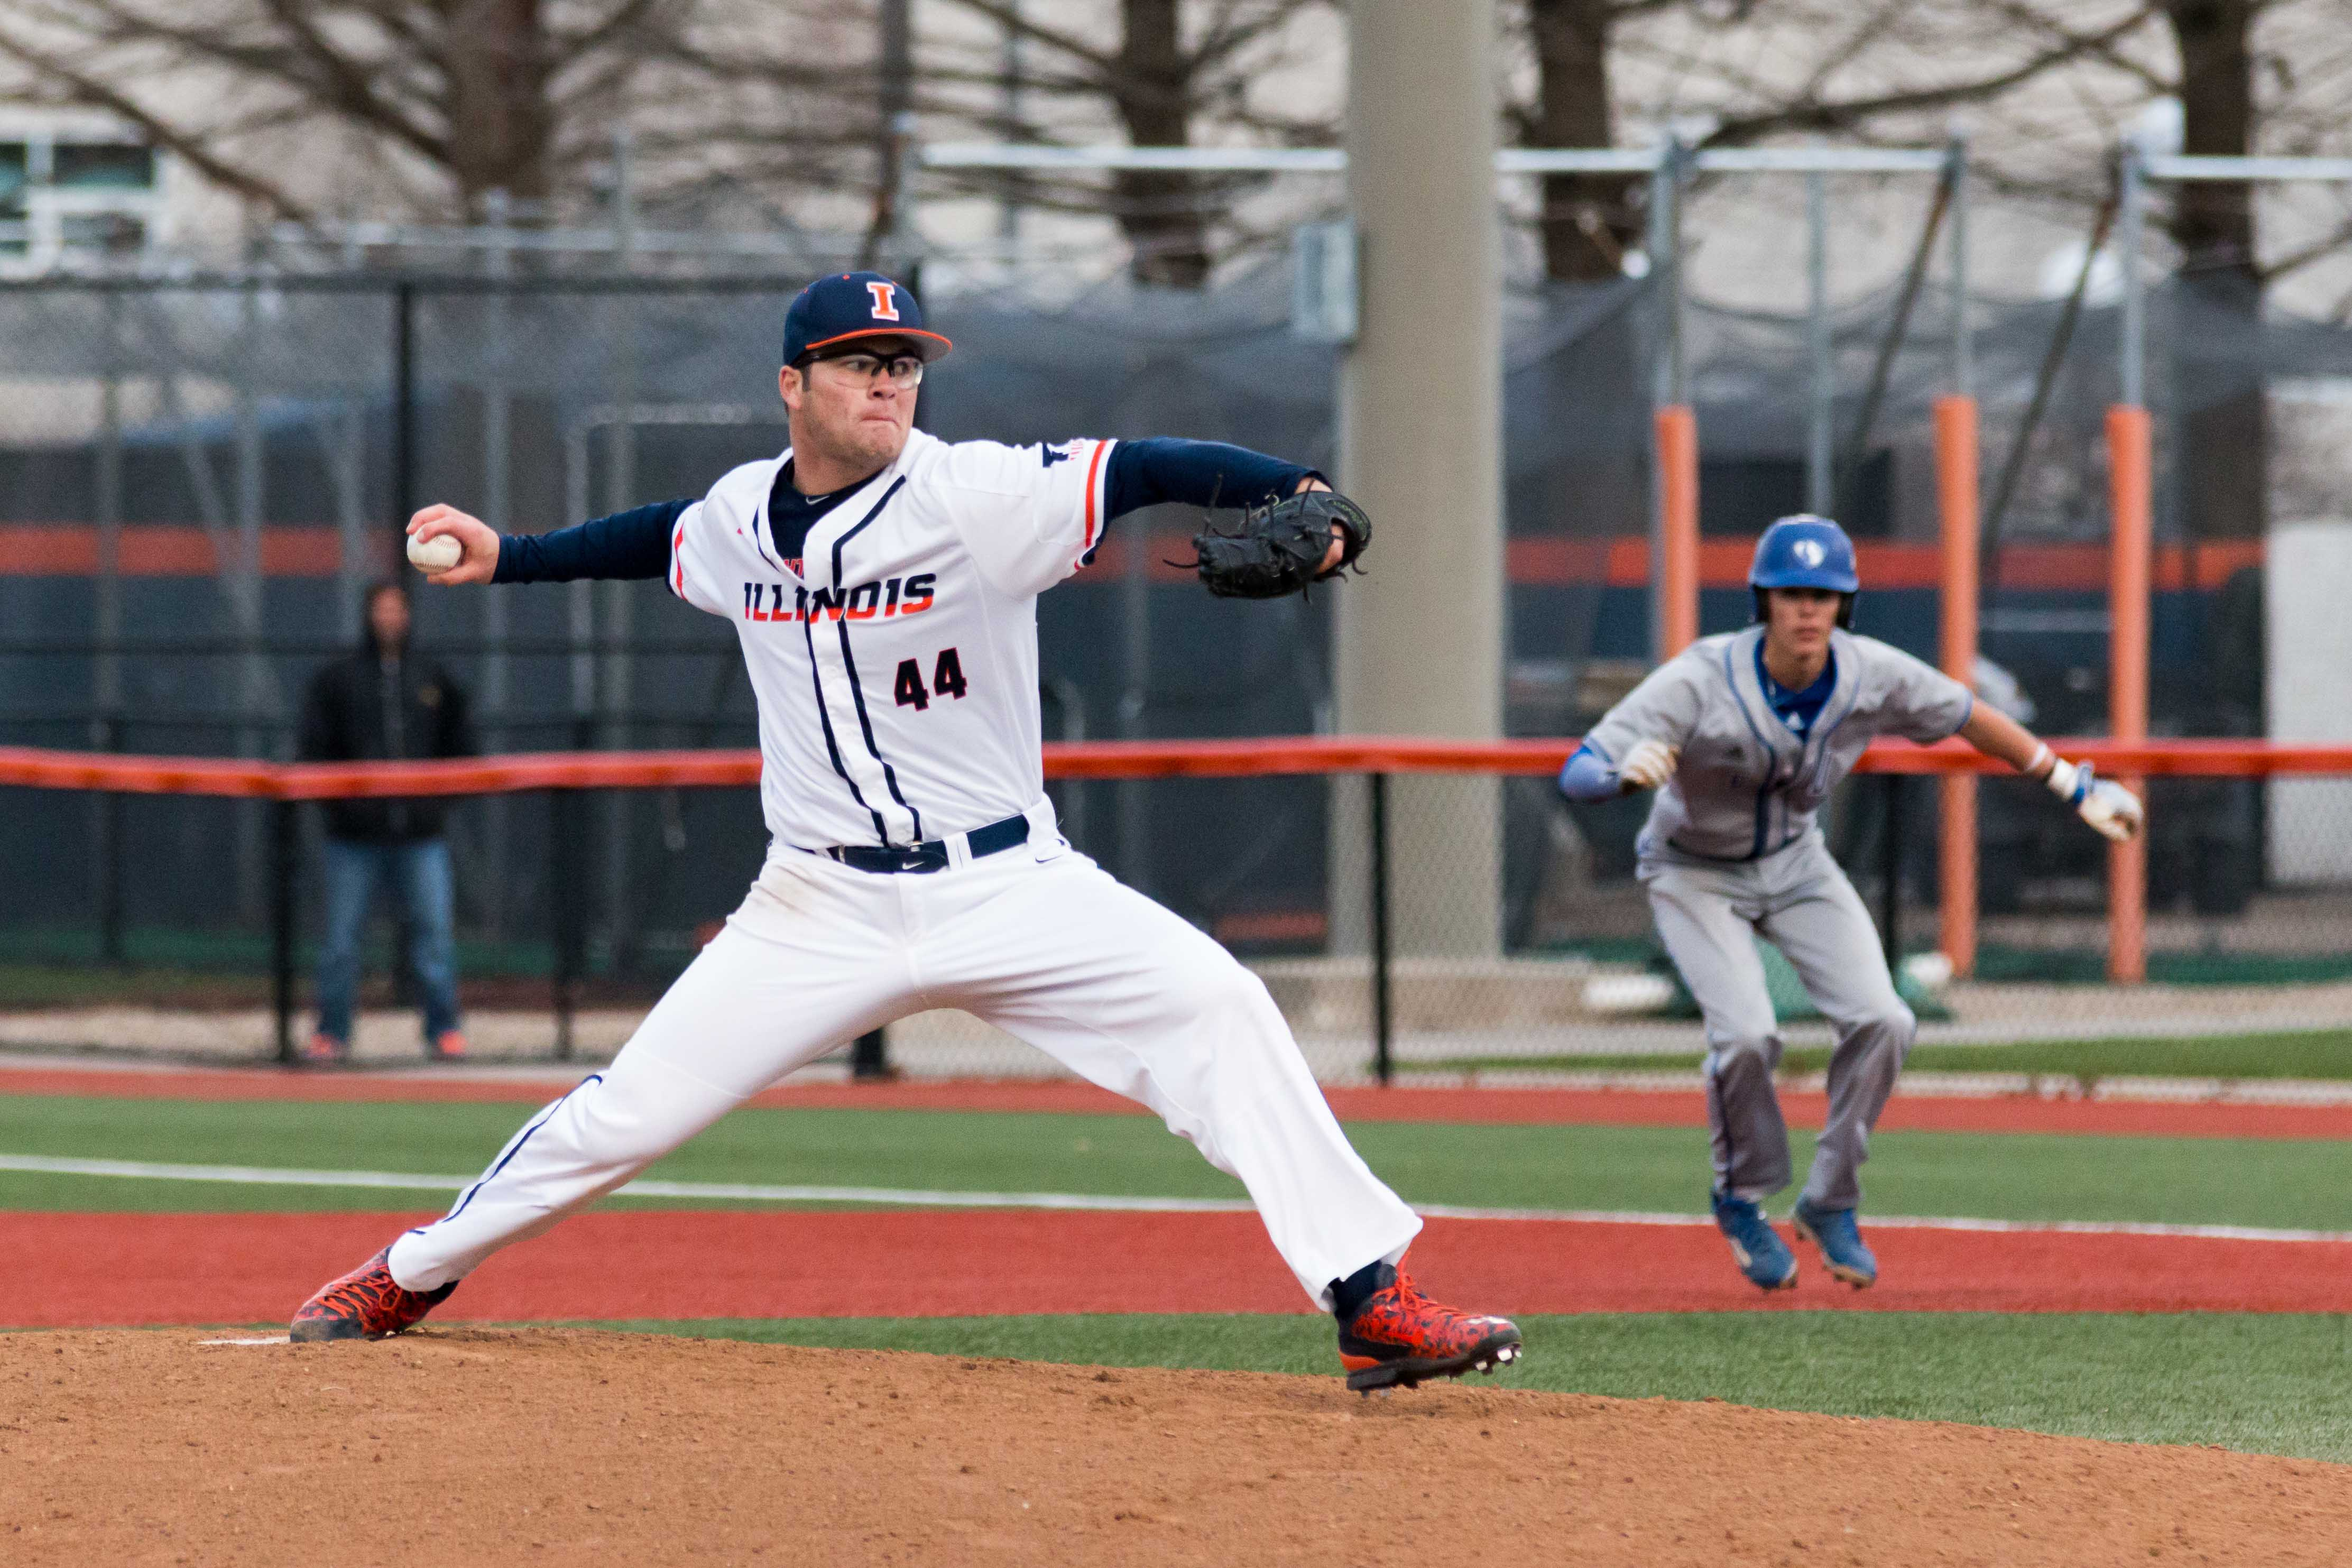 Illinois starting pitcher Quinten Sefcik delivers the pitch during the first inning of the game against Eastern Illinois at Illini Field on Tuesday, April 5. Sefcik pitched four innings and gave up seven hits and two runs. The Illini won 9-7.